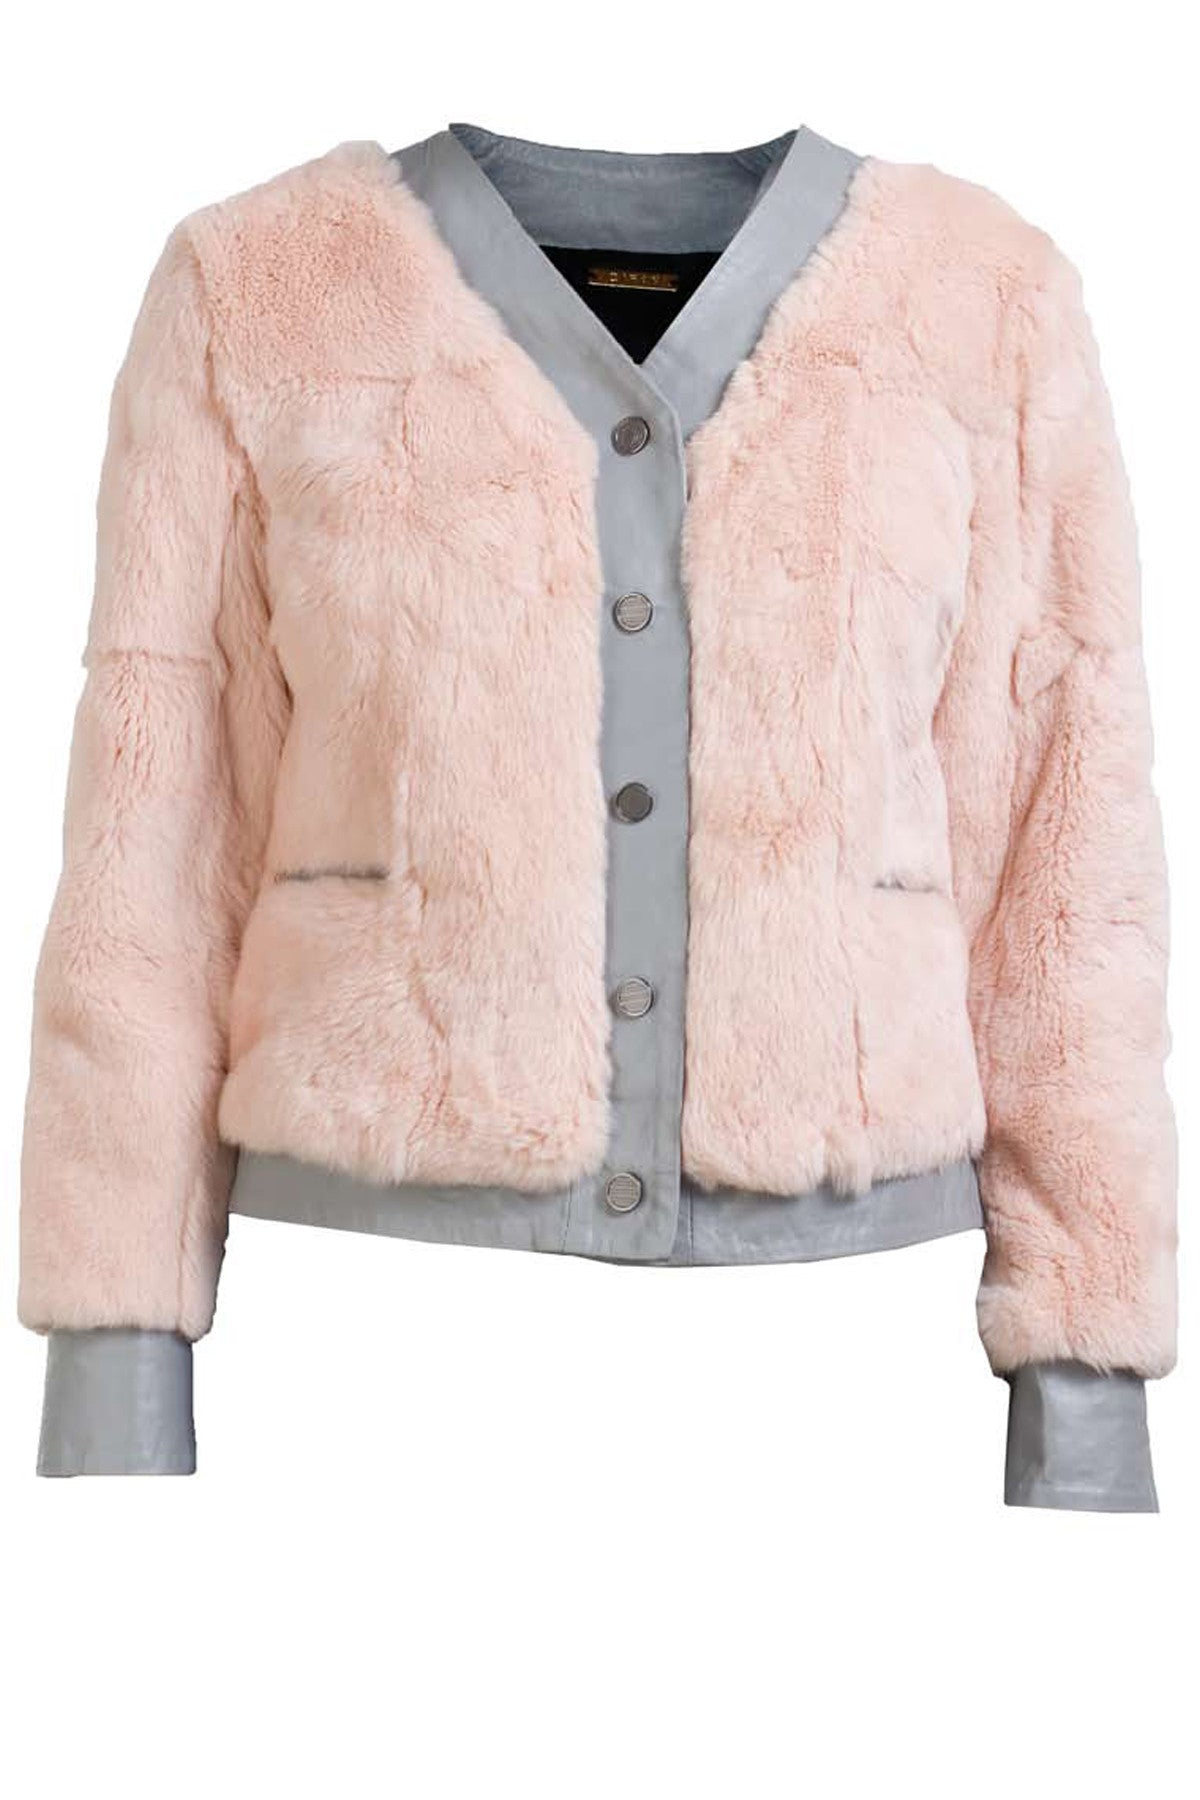 WILFRED JACKET- DUSTY PINK/GREY